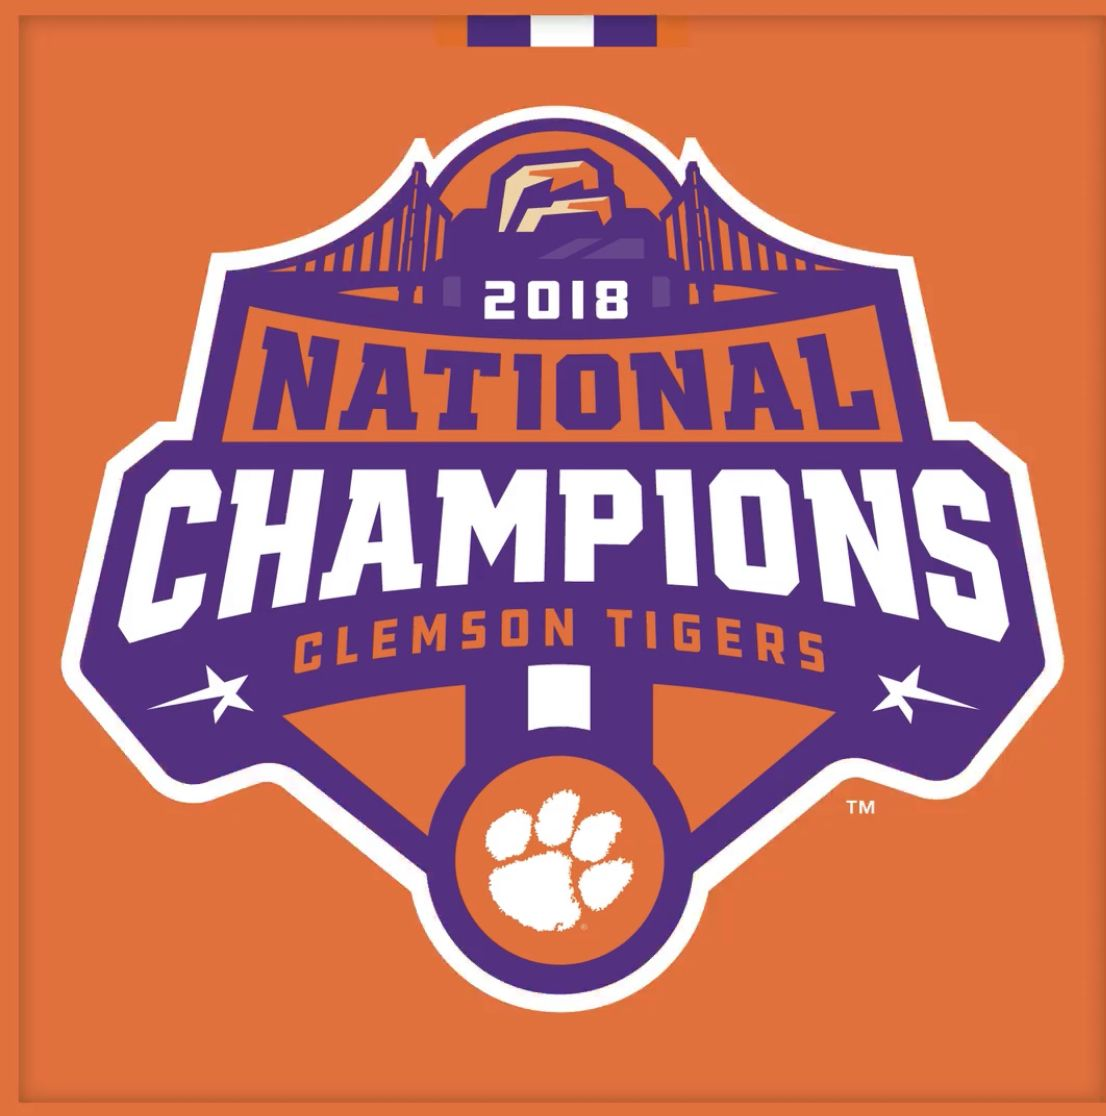 Pin By Milliemac On Sports Clemson Tigers Wallpaper Clemson Tigers Football Clemson Fans